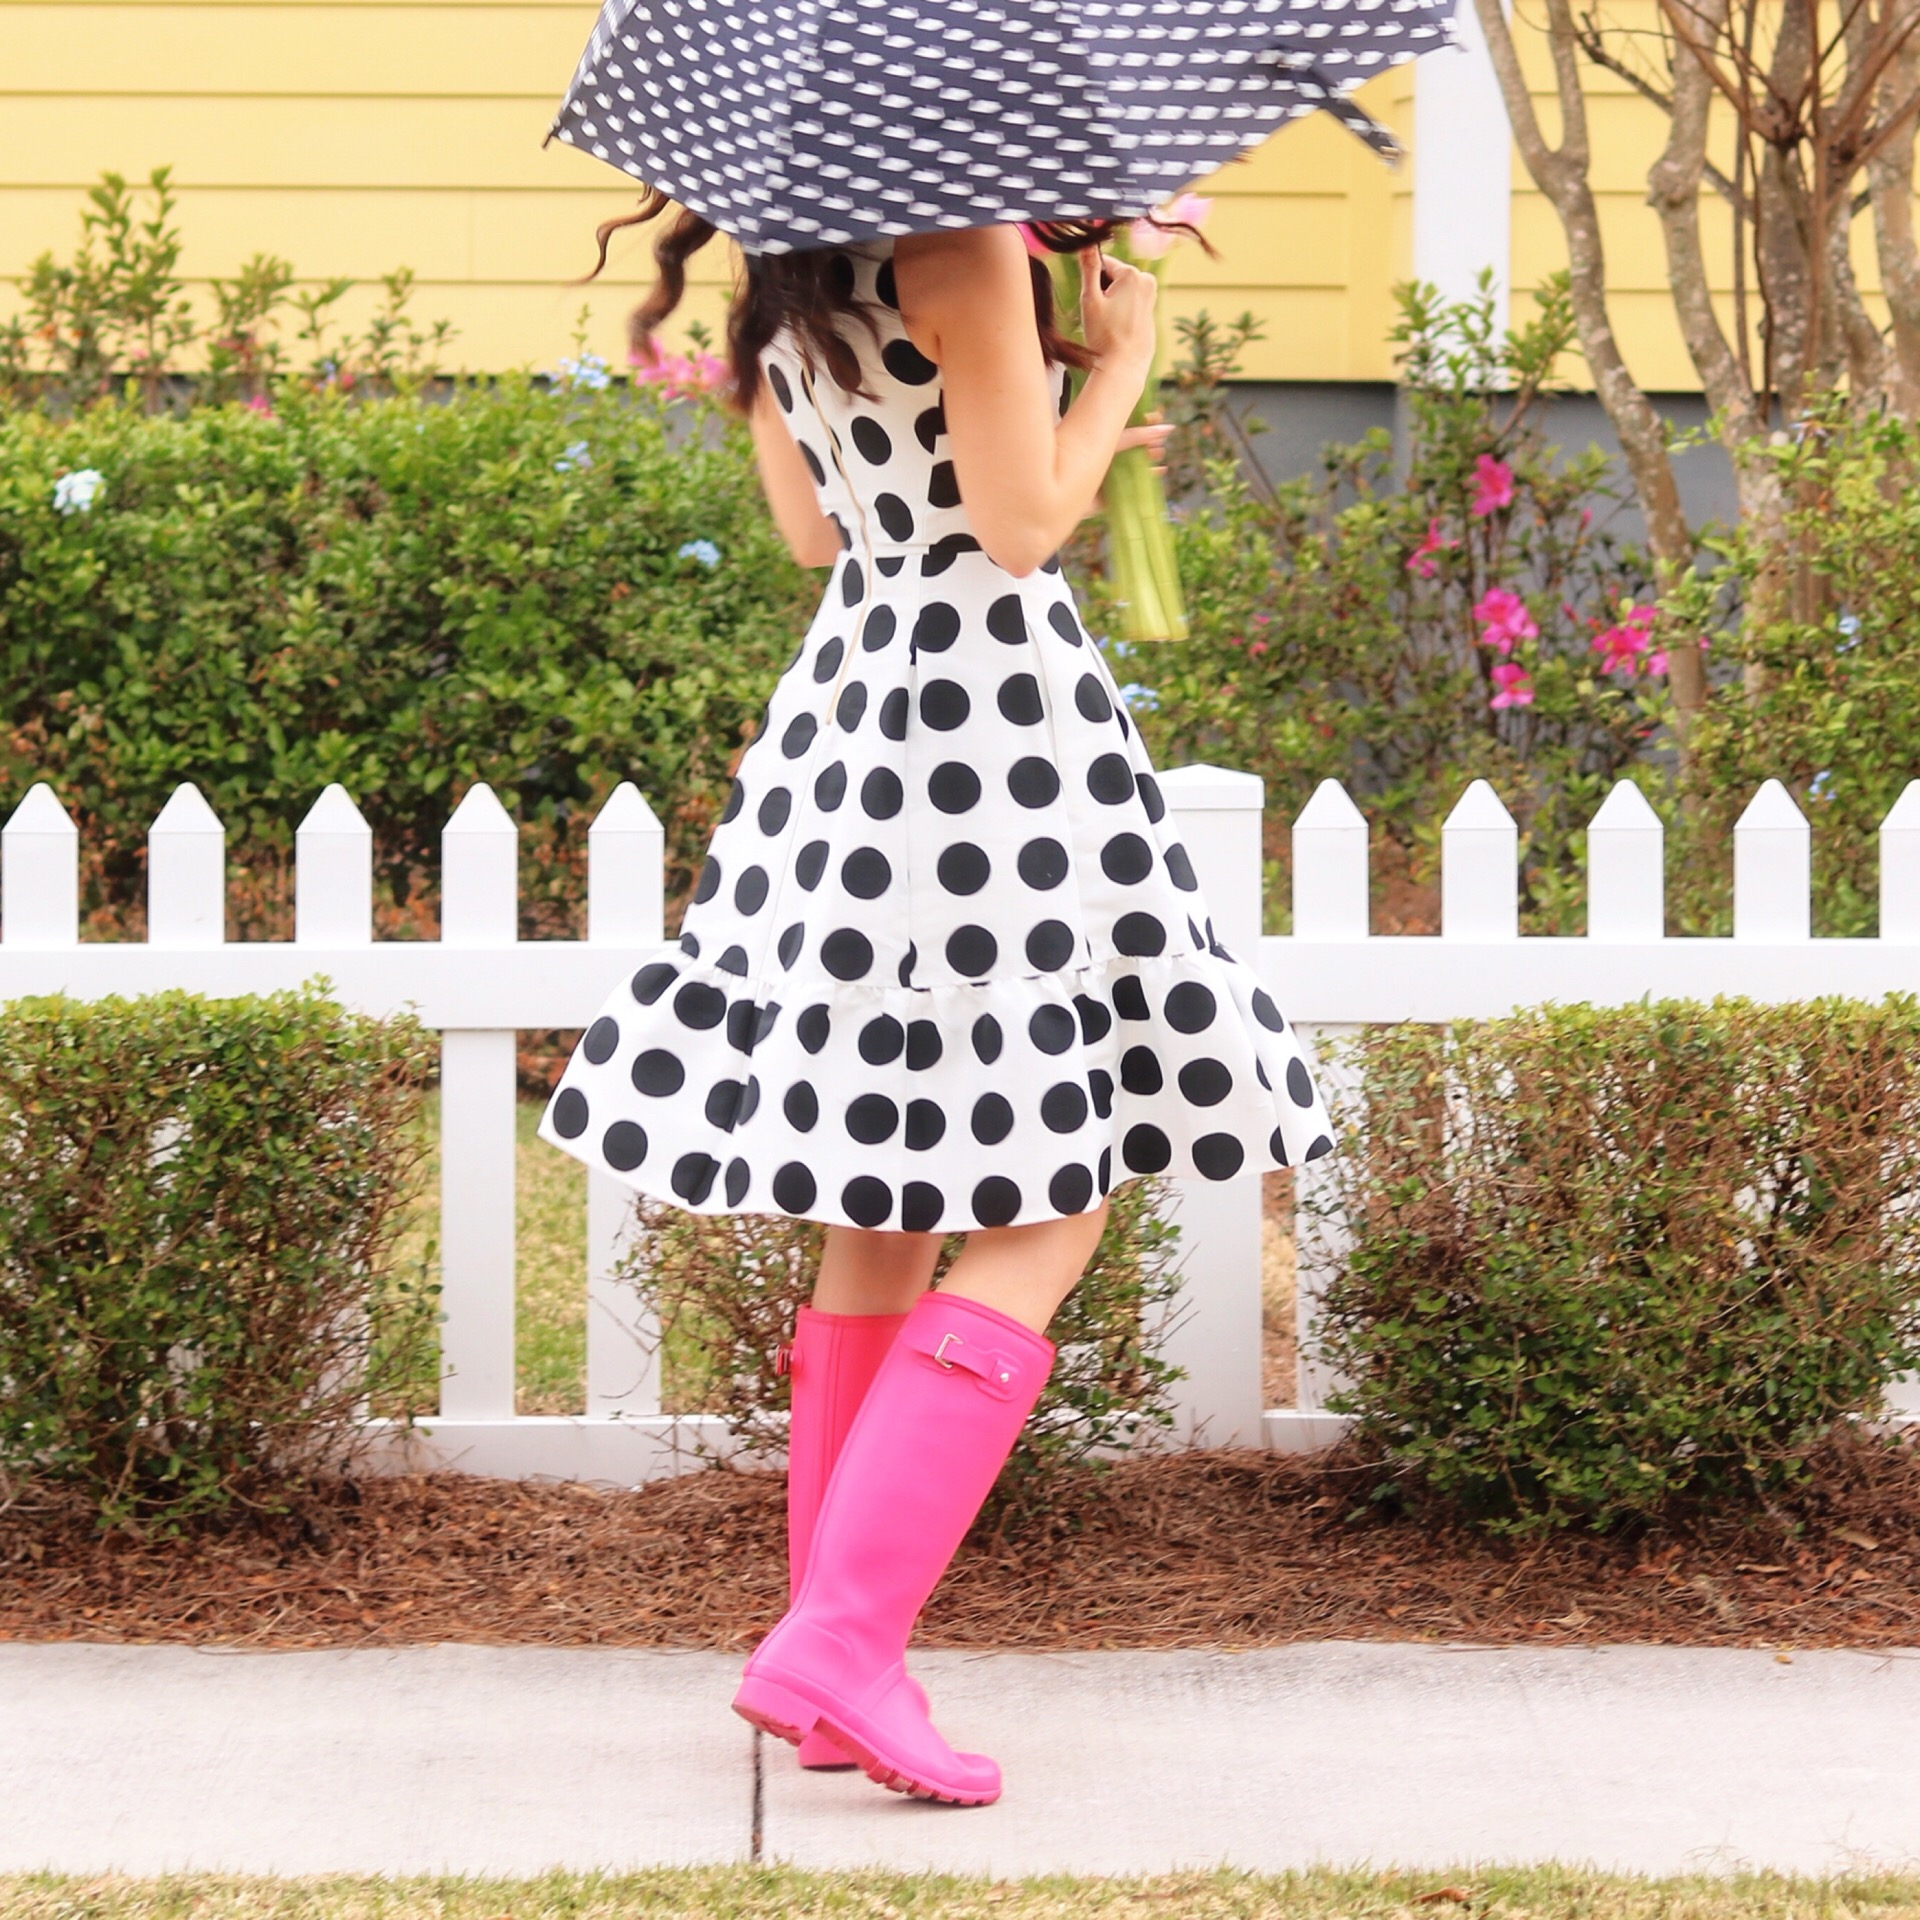 kate spade tribute photo.JPG